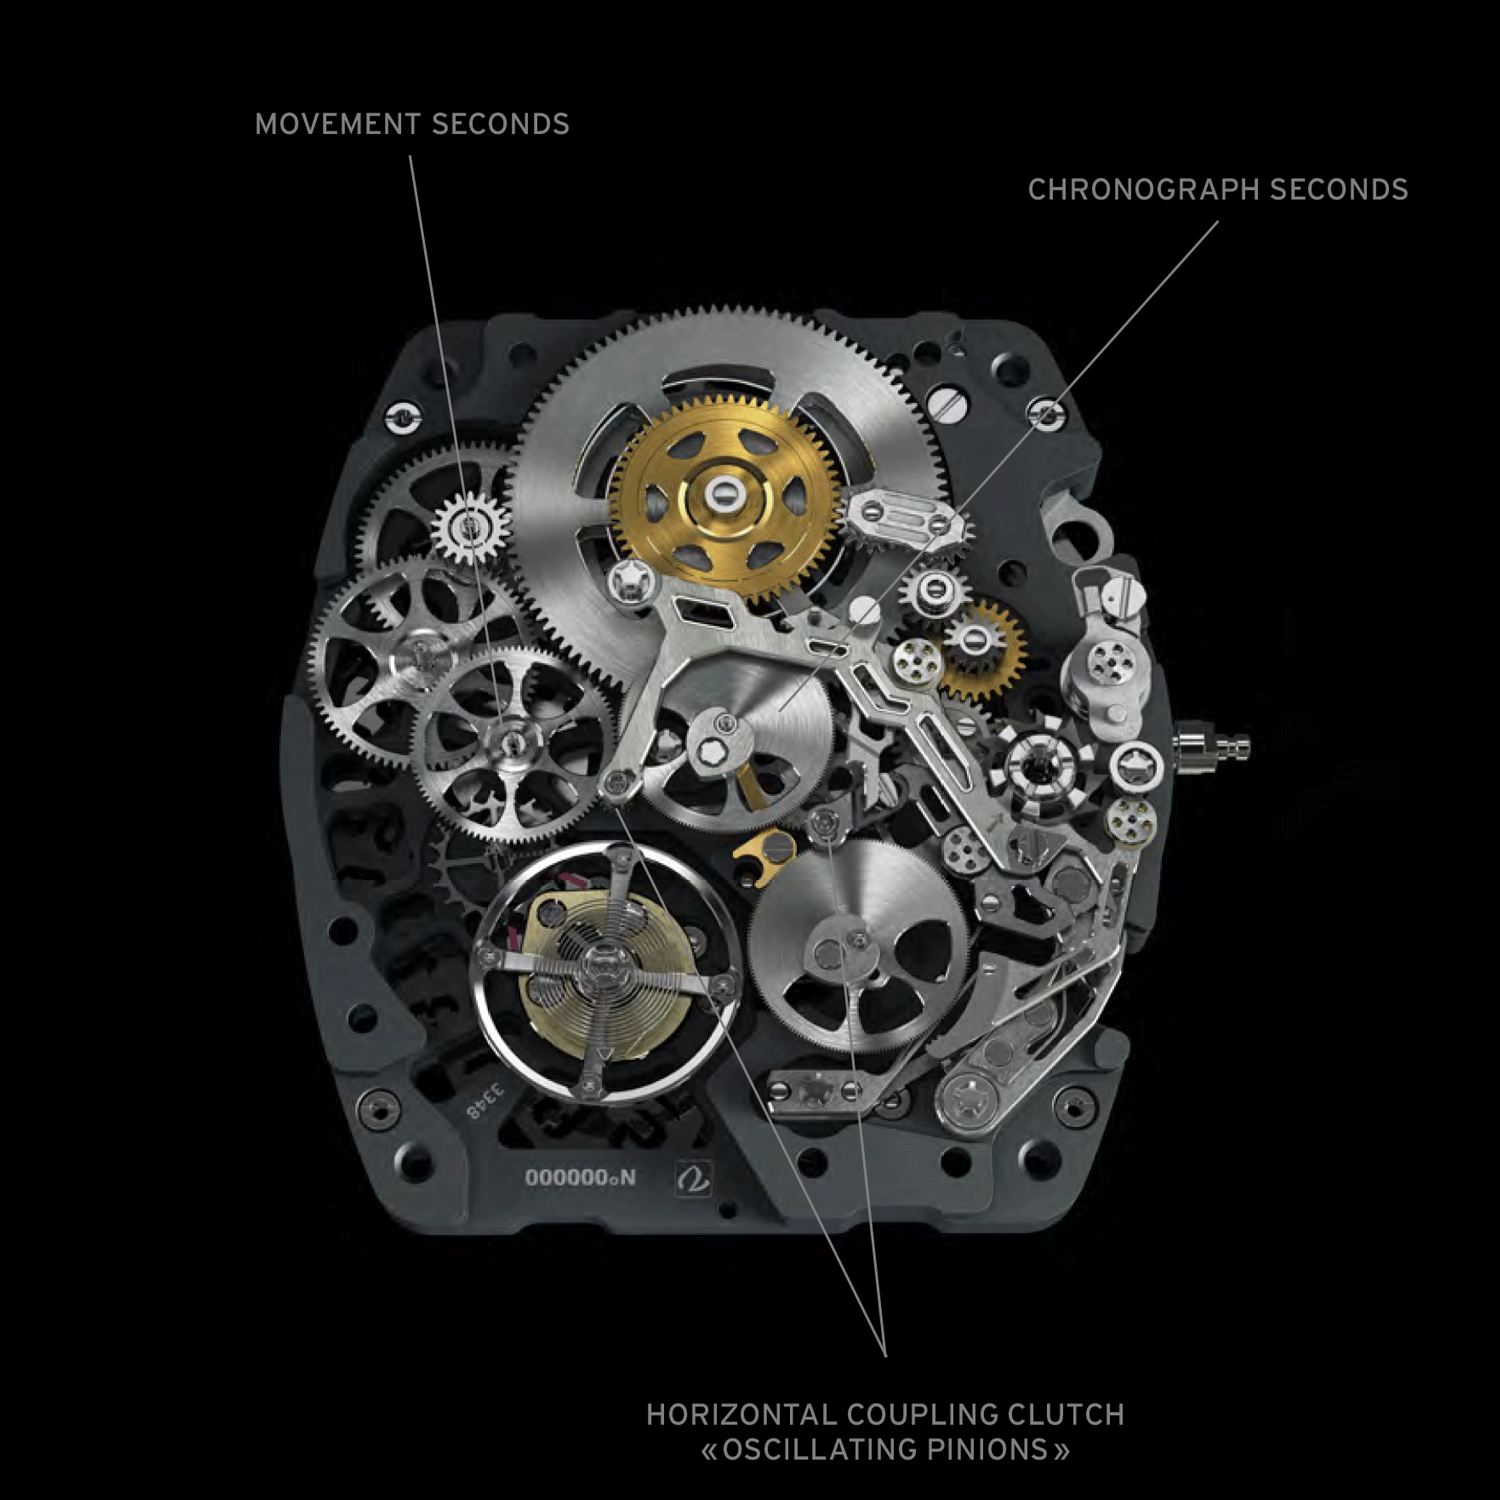 Tthe calibre CRMC1 is he first chronograph in the world with two oscillating pinions incorporated